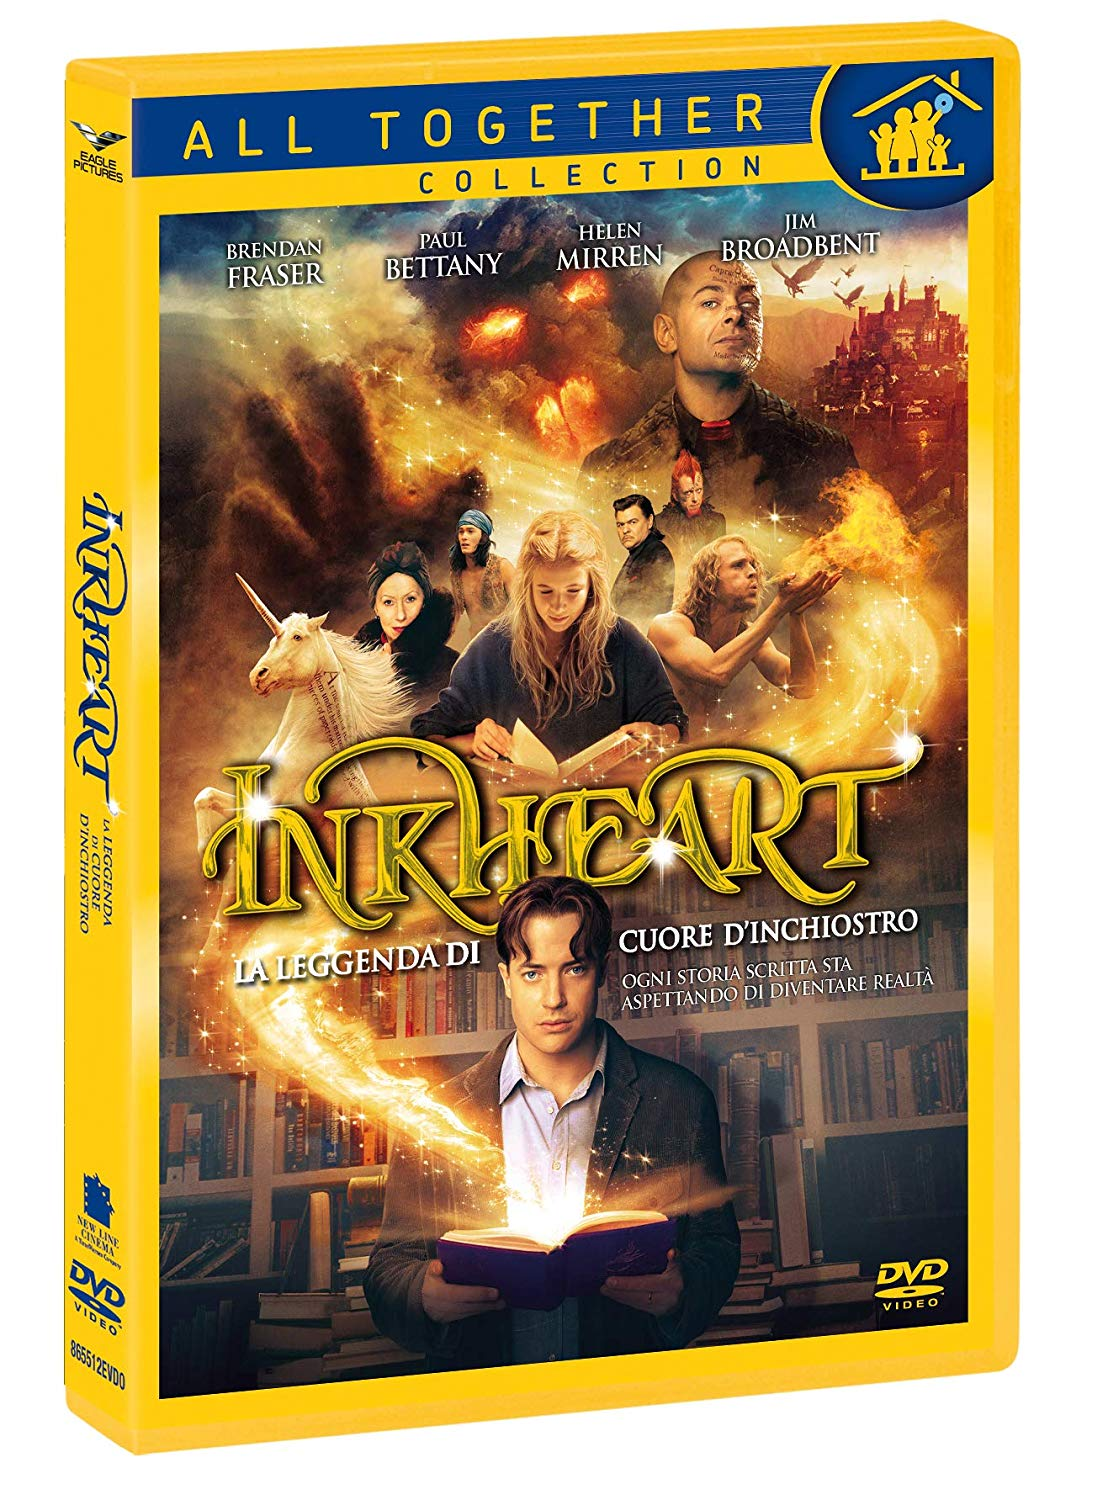 100806-Inkheart-La-Leggenda-Di-Cuore-D-039-Inchiostro-039-039-All-Together-039-039-DVD-x-1-I